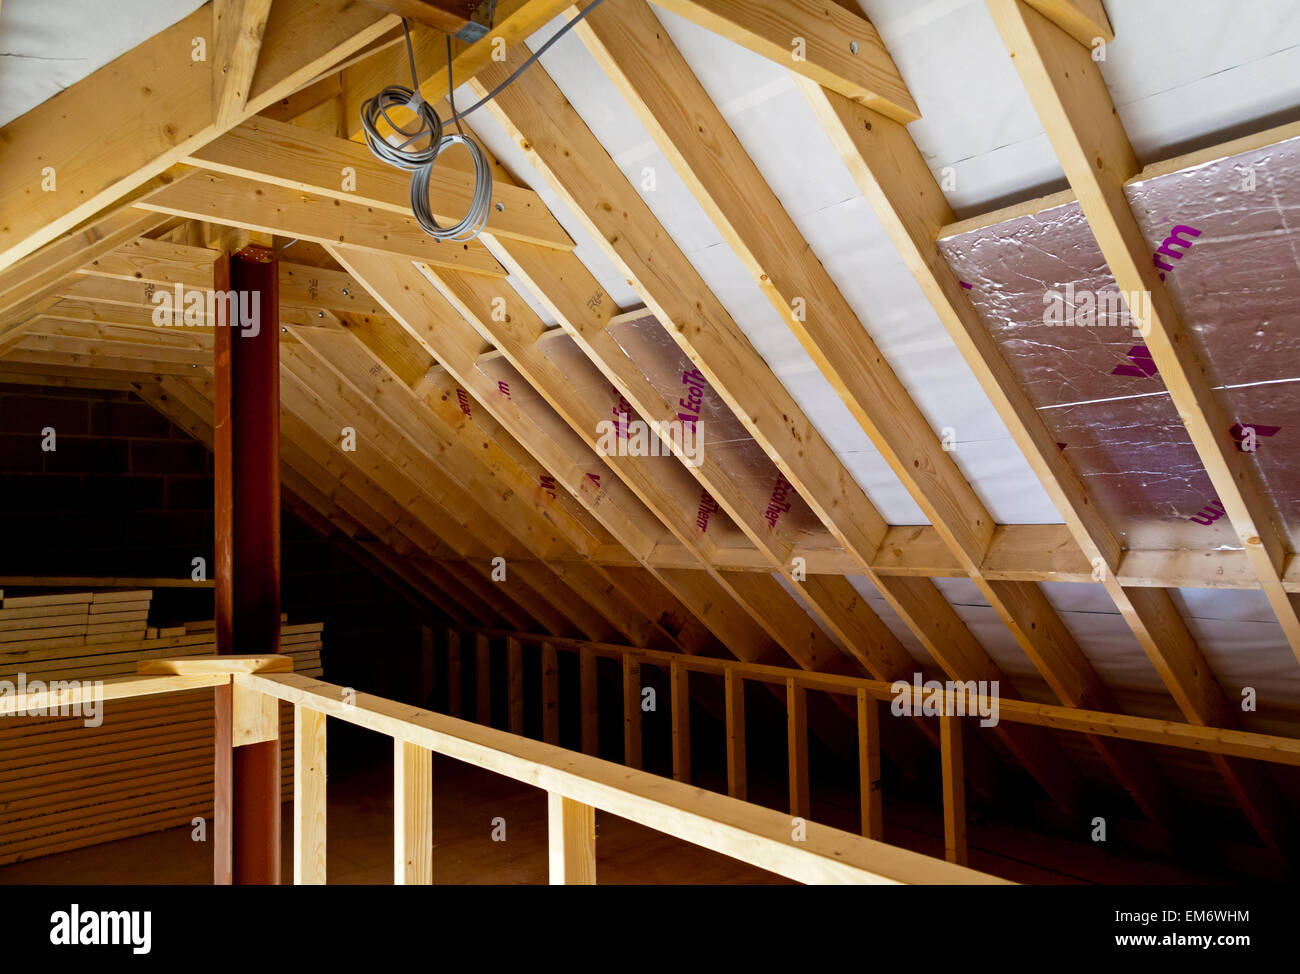 Interior Of New Building Under Construction Showing Insulation Panels  Timber Roof Joists And Wood Used In An Attic Space